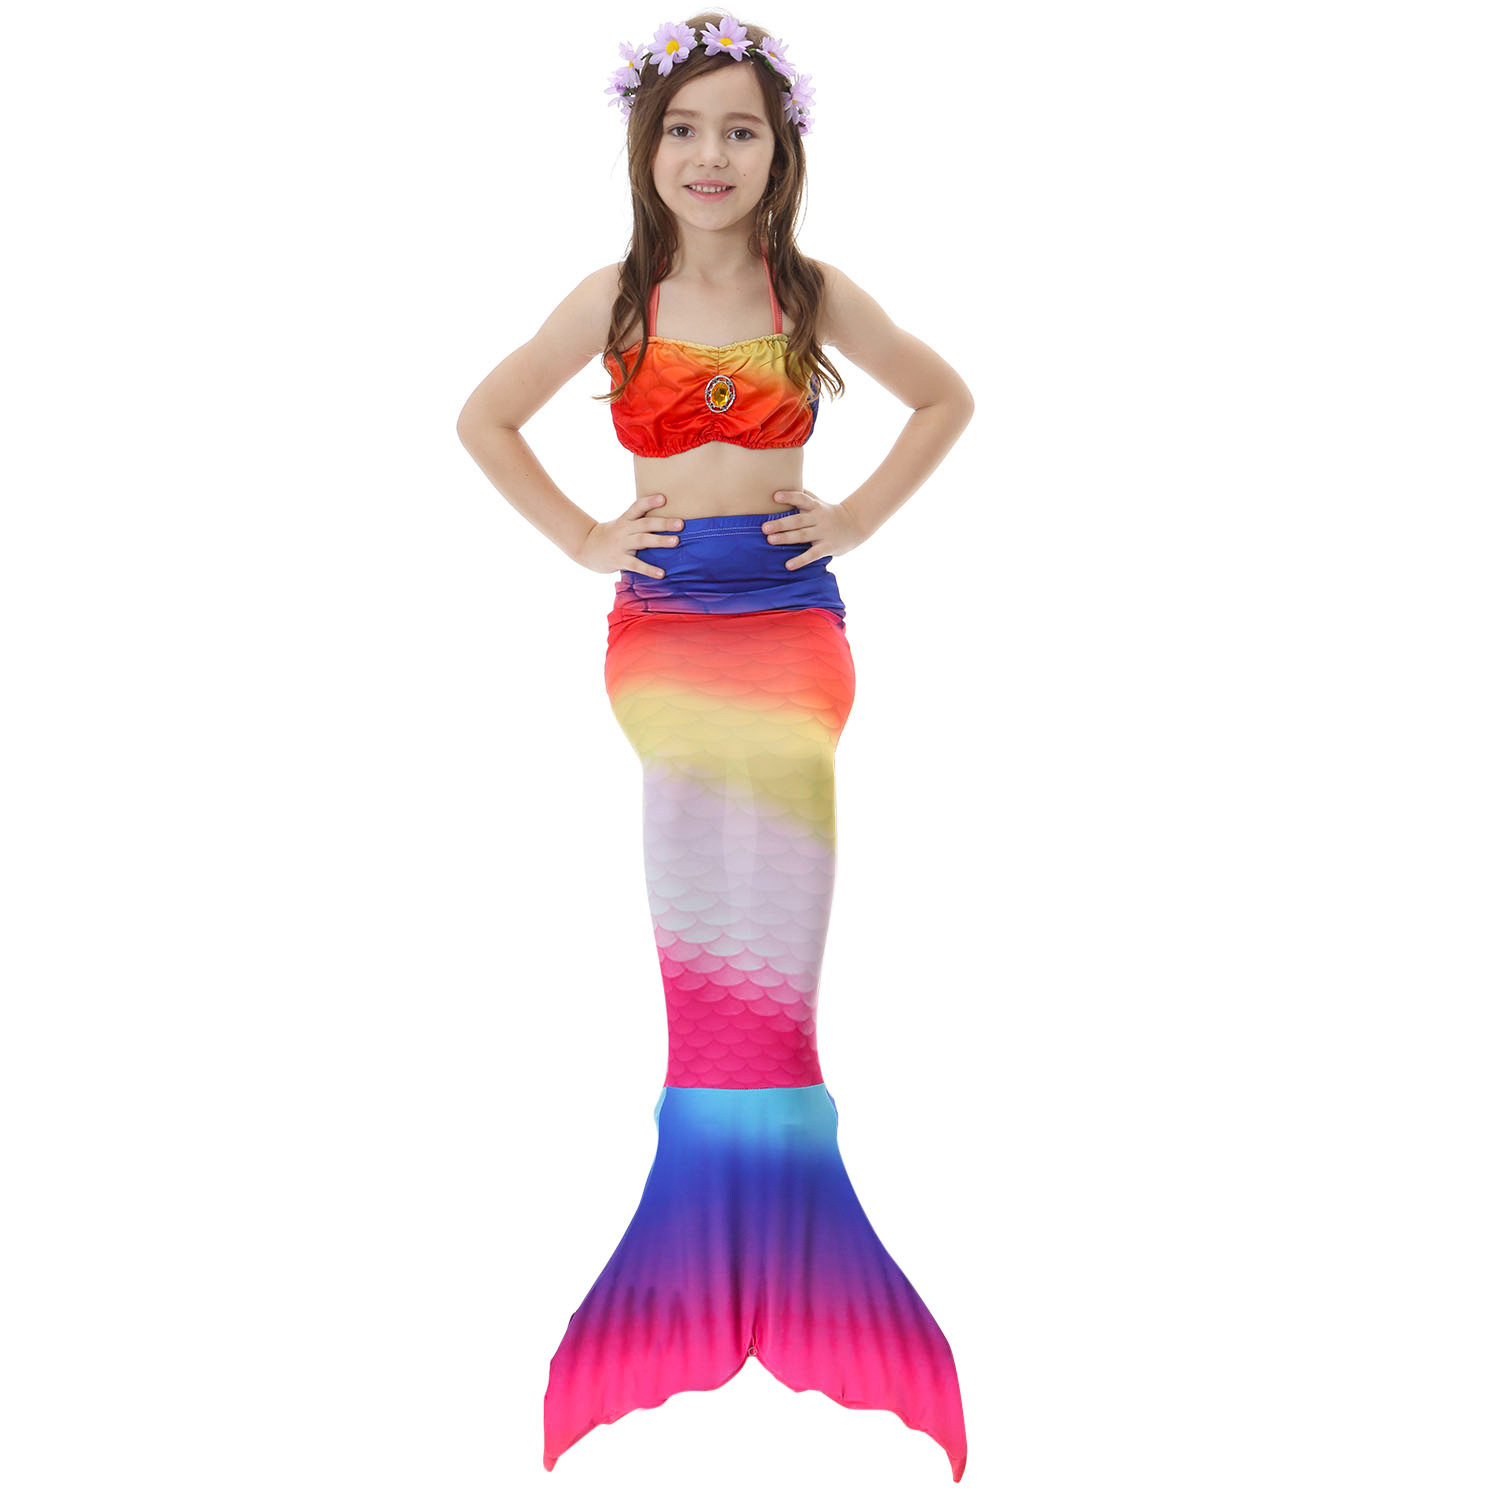 Mermaid Tail For Swimming Girls Bikini Swimsuit Cosplay Kids Swimmalbe Mermaid Tail Princess Dress Costume